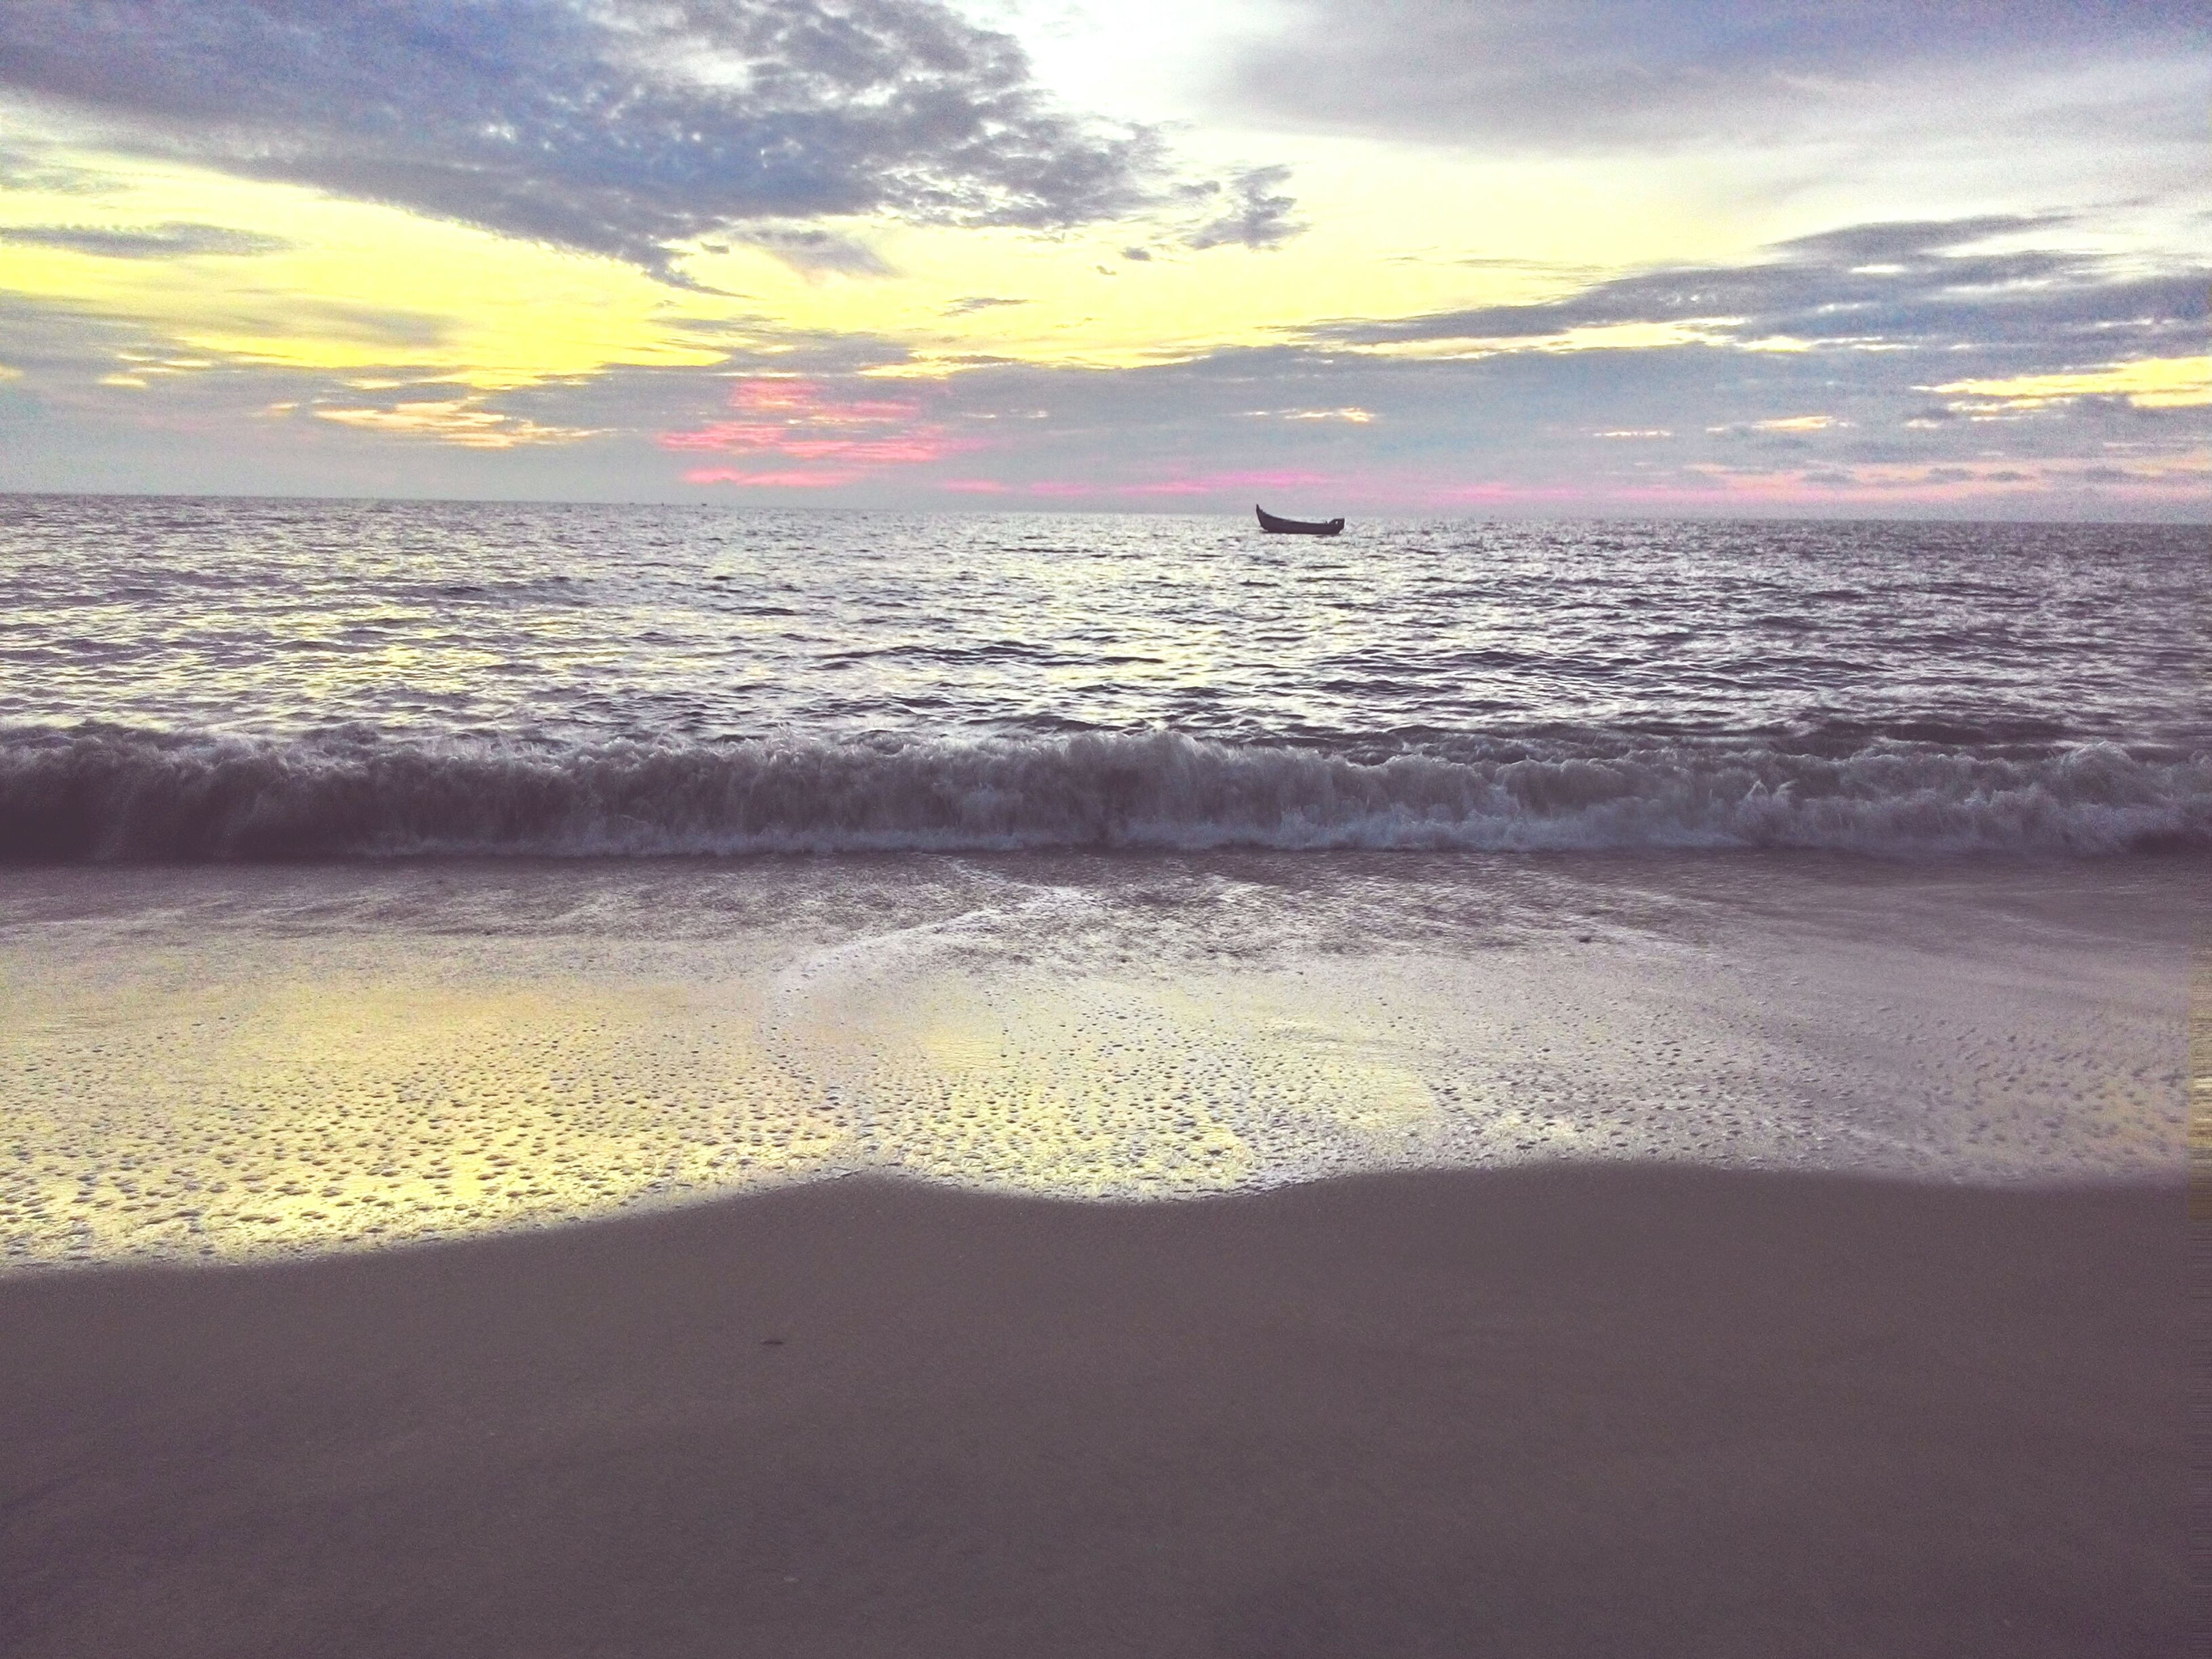 beach, sea, sand, horizon over water, water, sky, shore, sunset, scenics, tranquil scene, beauty in nature, tranquility, cloud - sky, nature, idyllic, wave, cloud, vacations, coastline, orange color